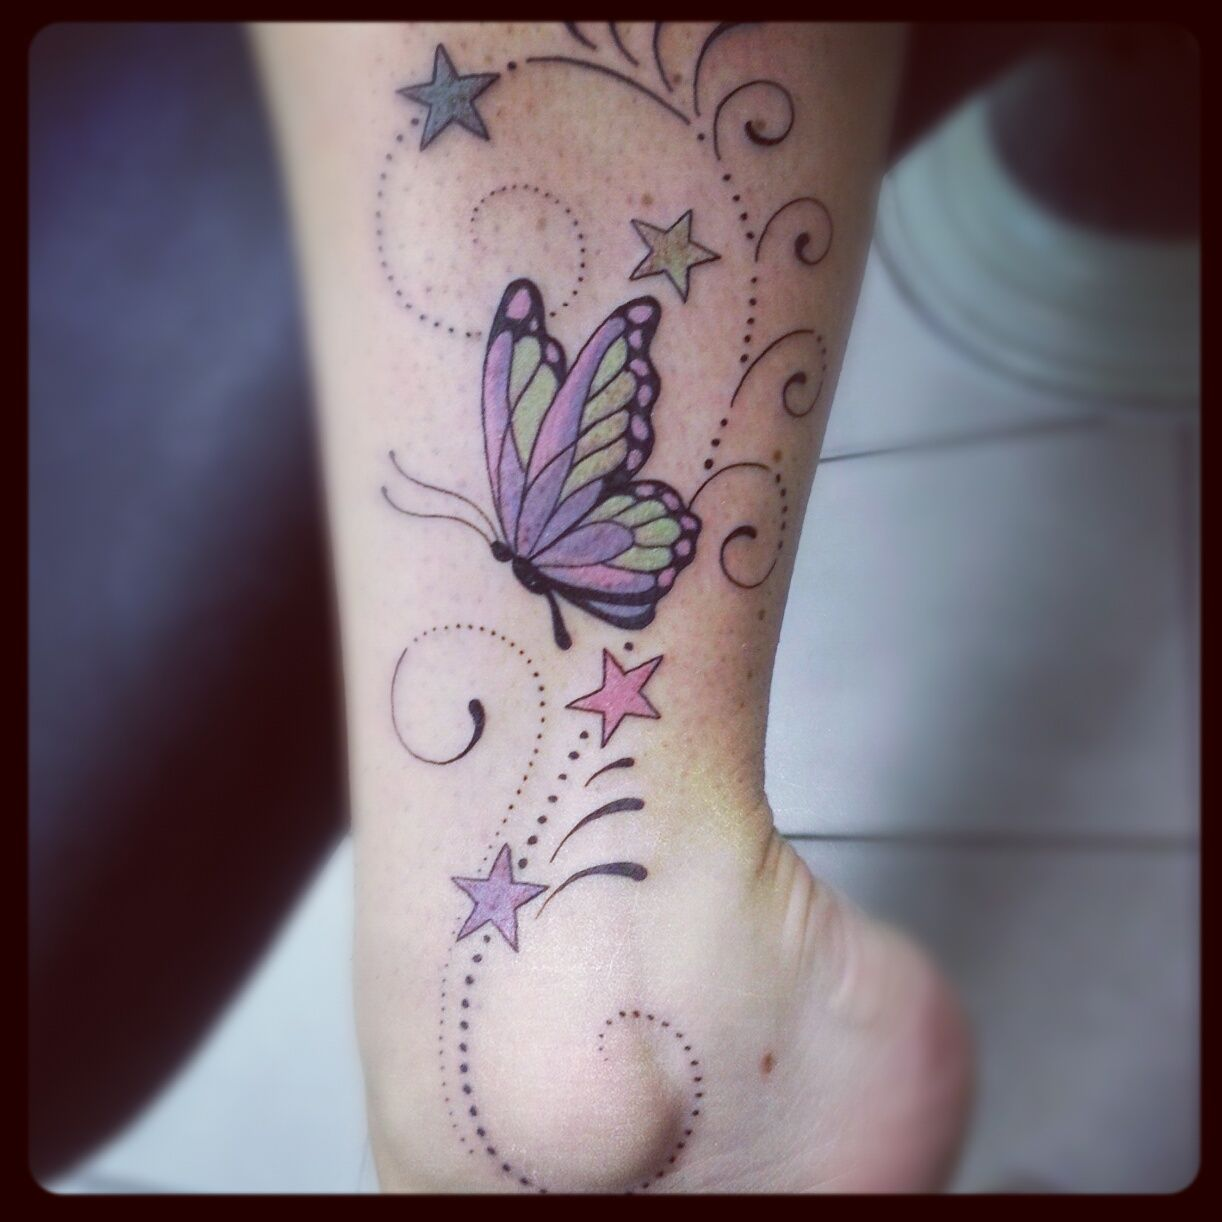 Cool new tattoo ideas for guys this is my ankle tattoo butterflies and stars  tattoos  pinterest